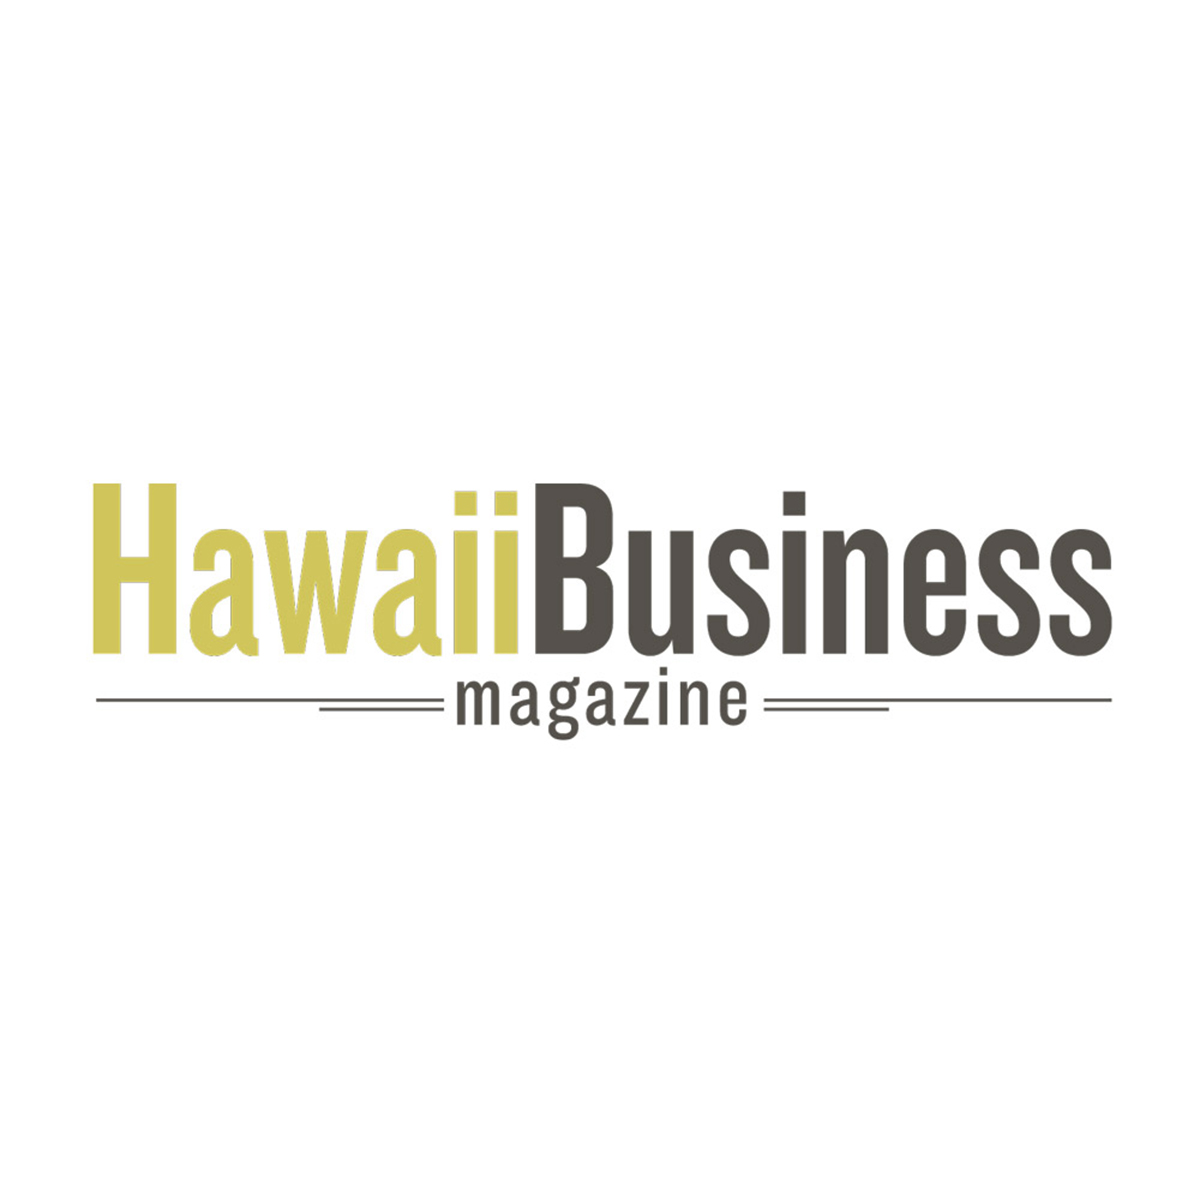 Hawaii business magazine.jpg